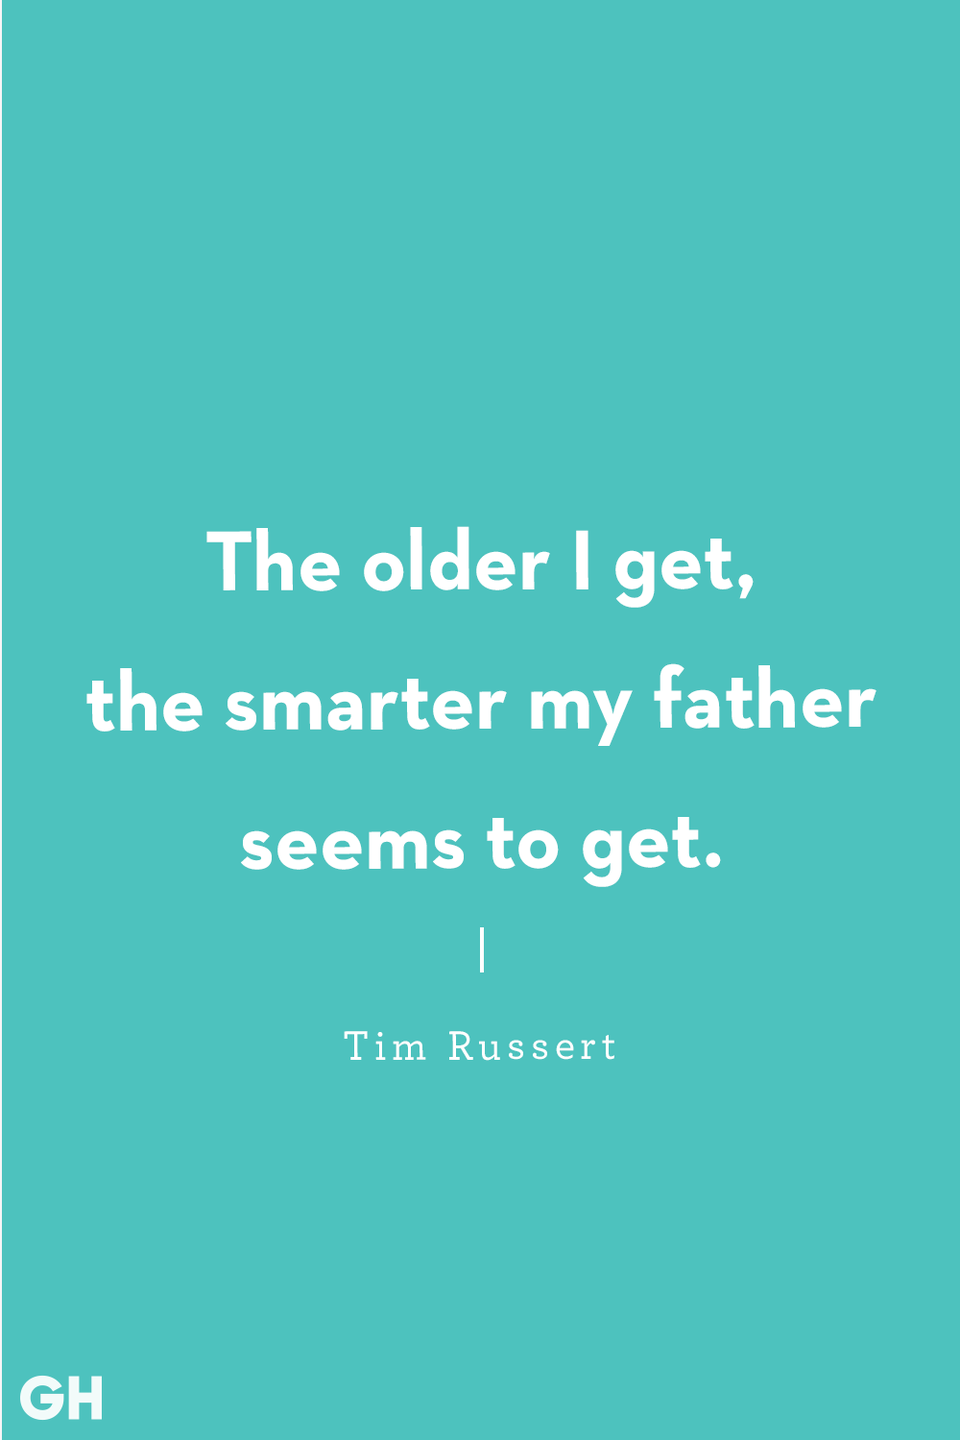 <p>The older I get, the smarter my father seems to get.</p>